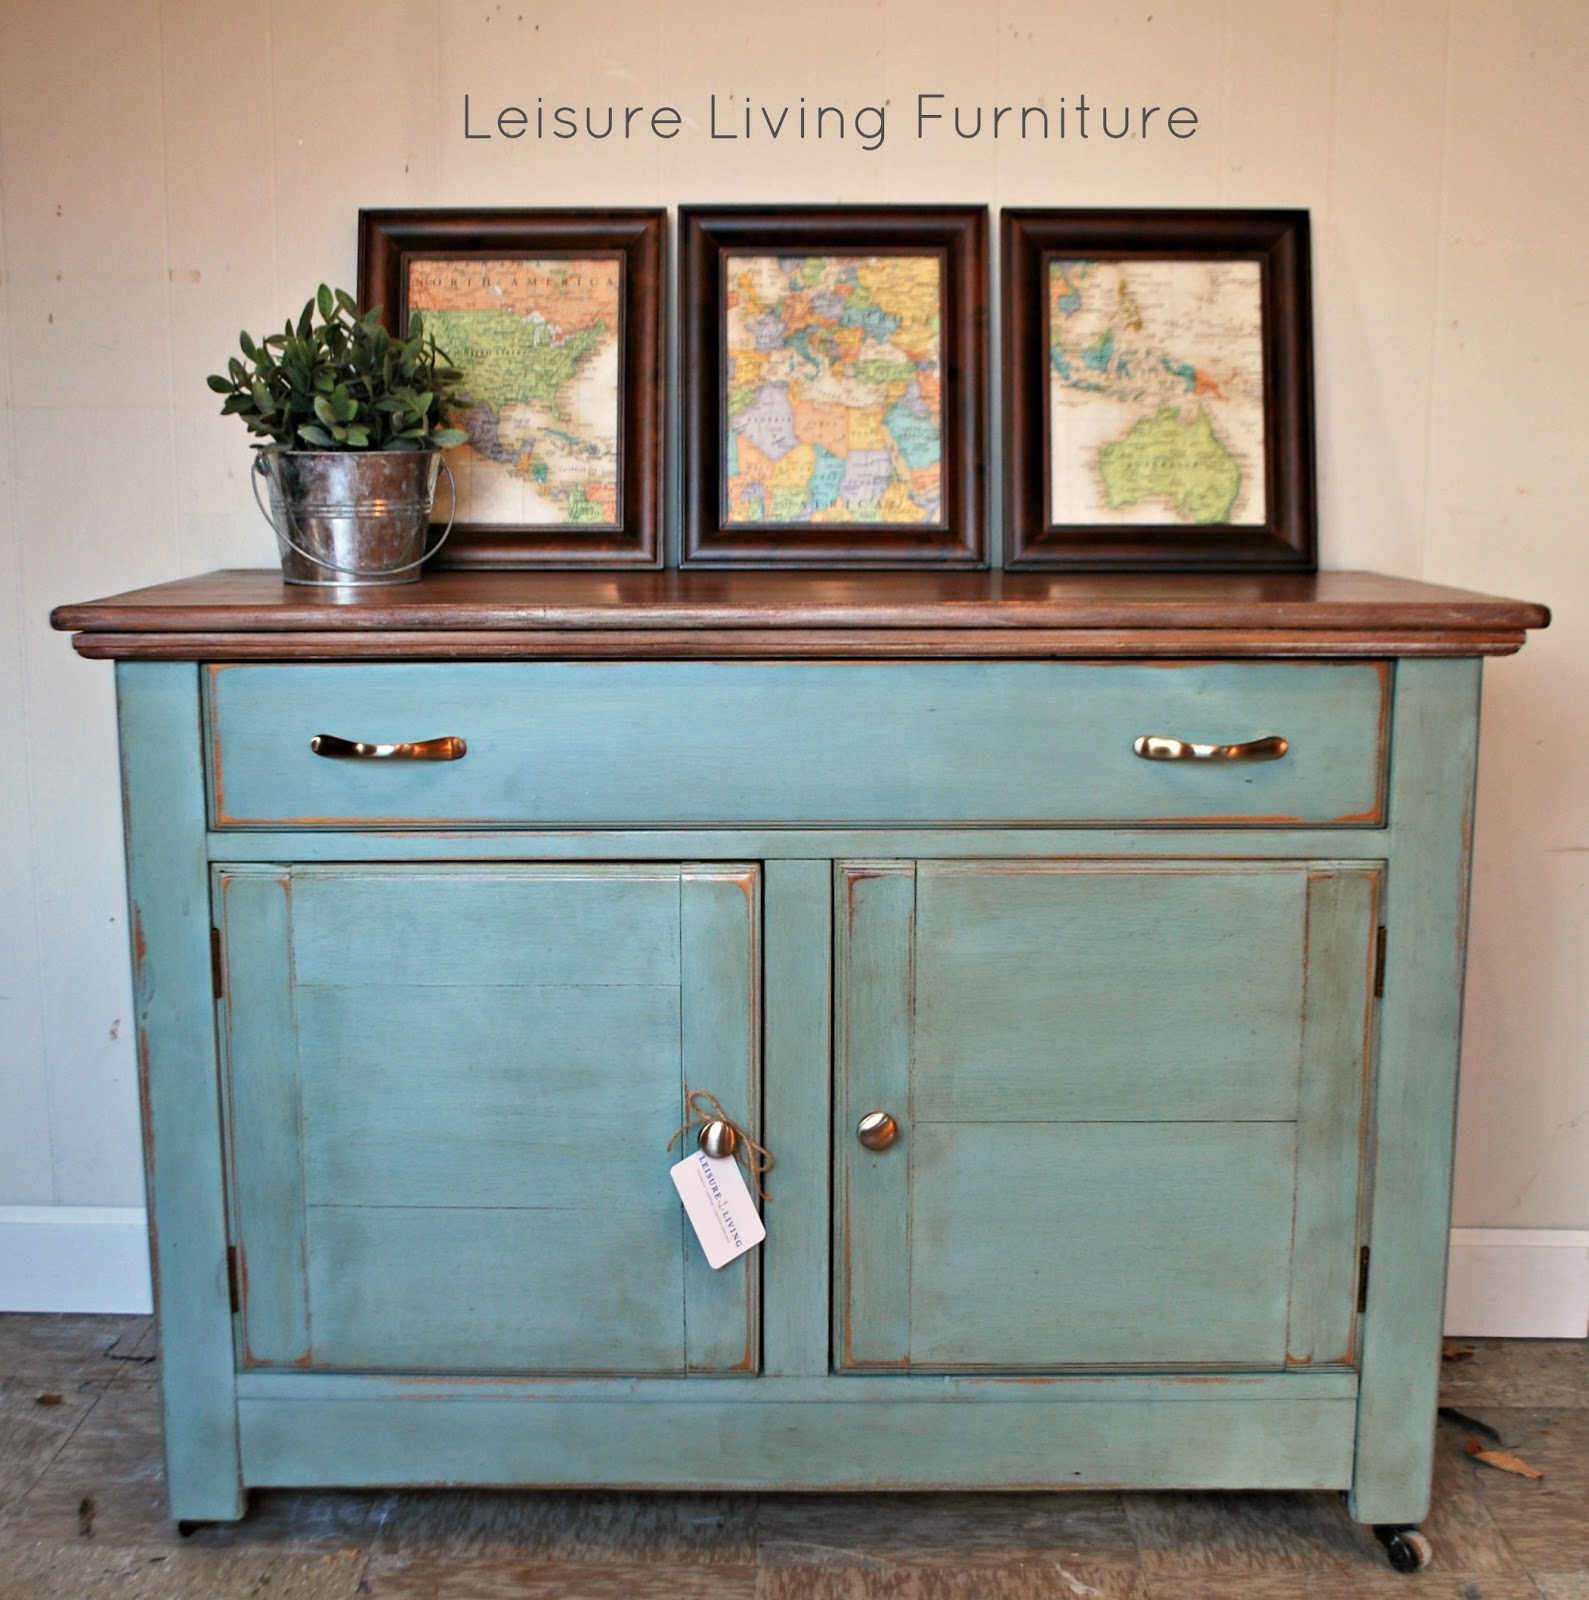 leisure living: Entryway Cabinet